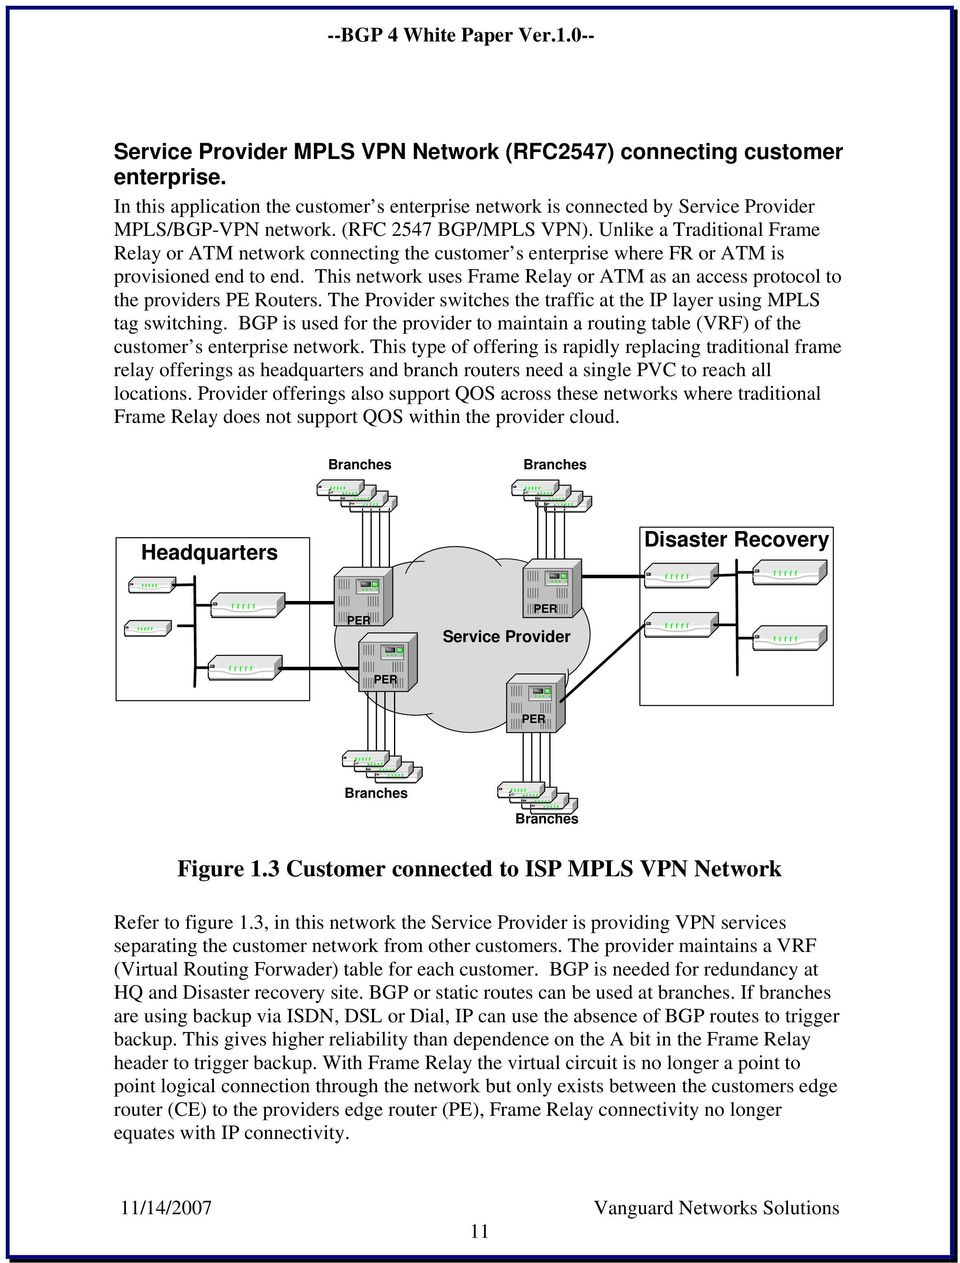 This network uses Frame Relay or ATM as an access protocol to the providers PE Routers. The Provider switches the traffic at the IP layer using MPLS tag switching.